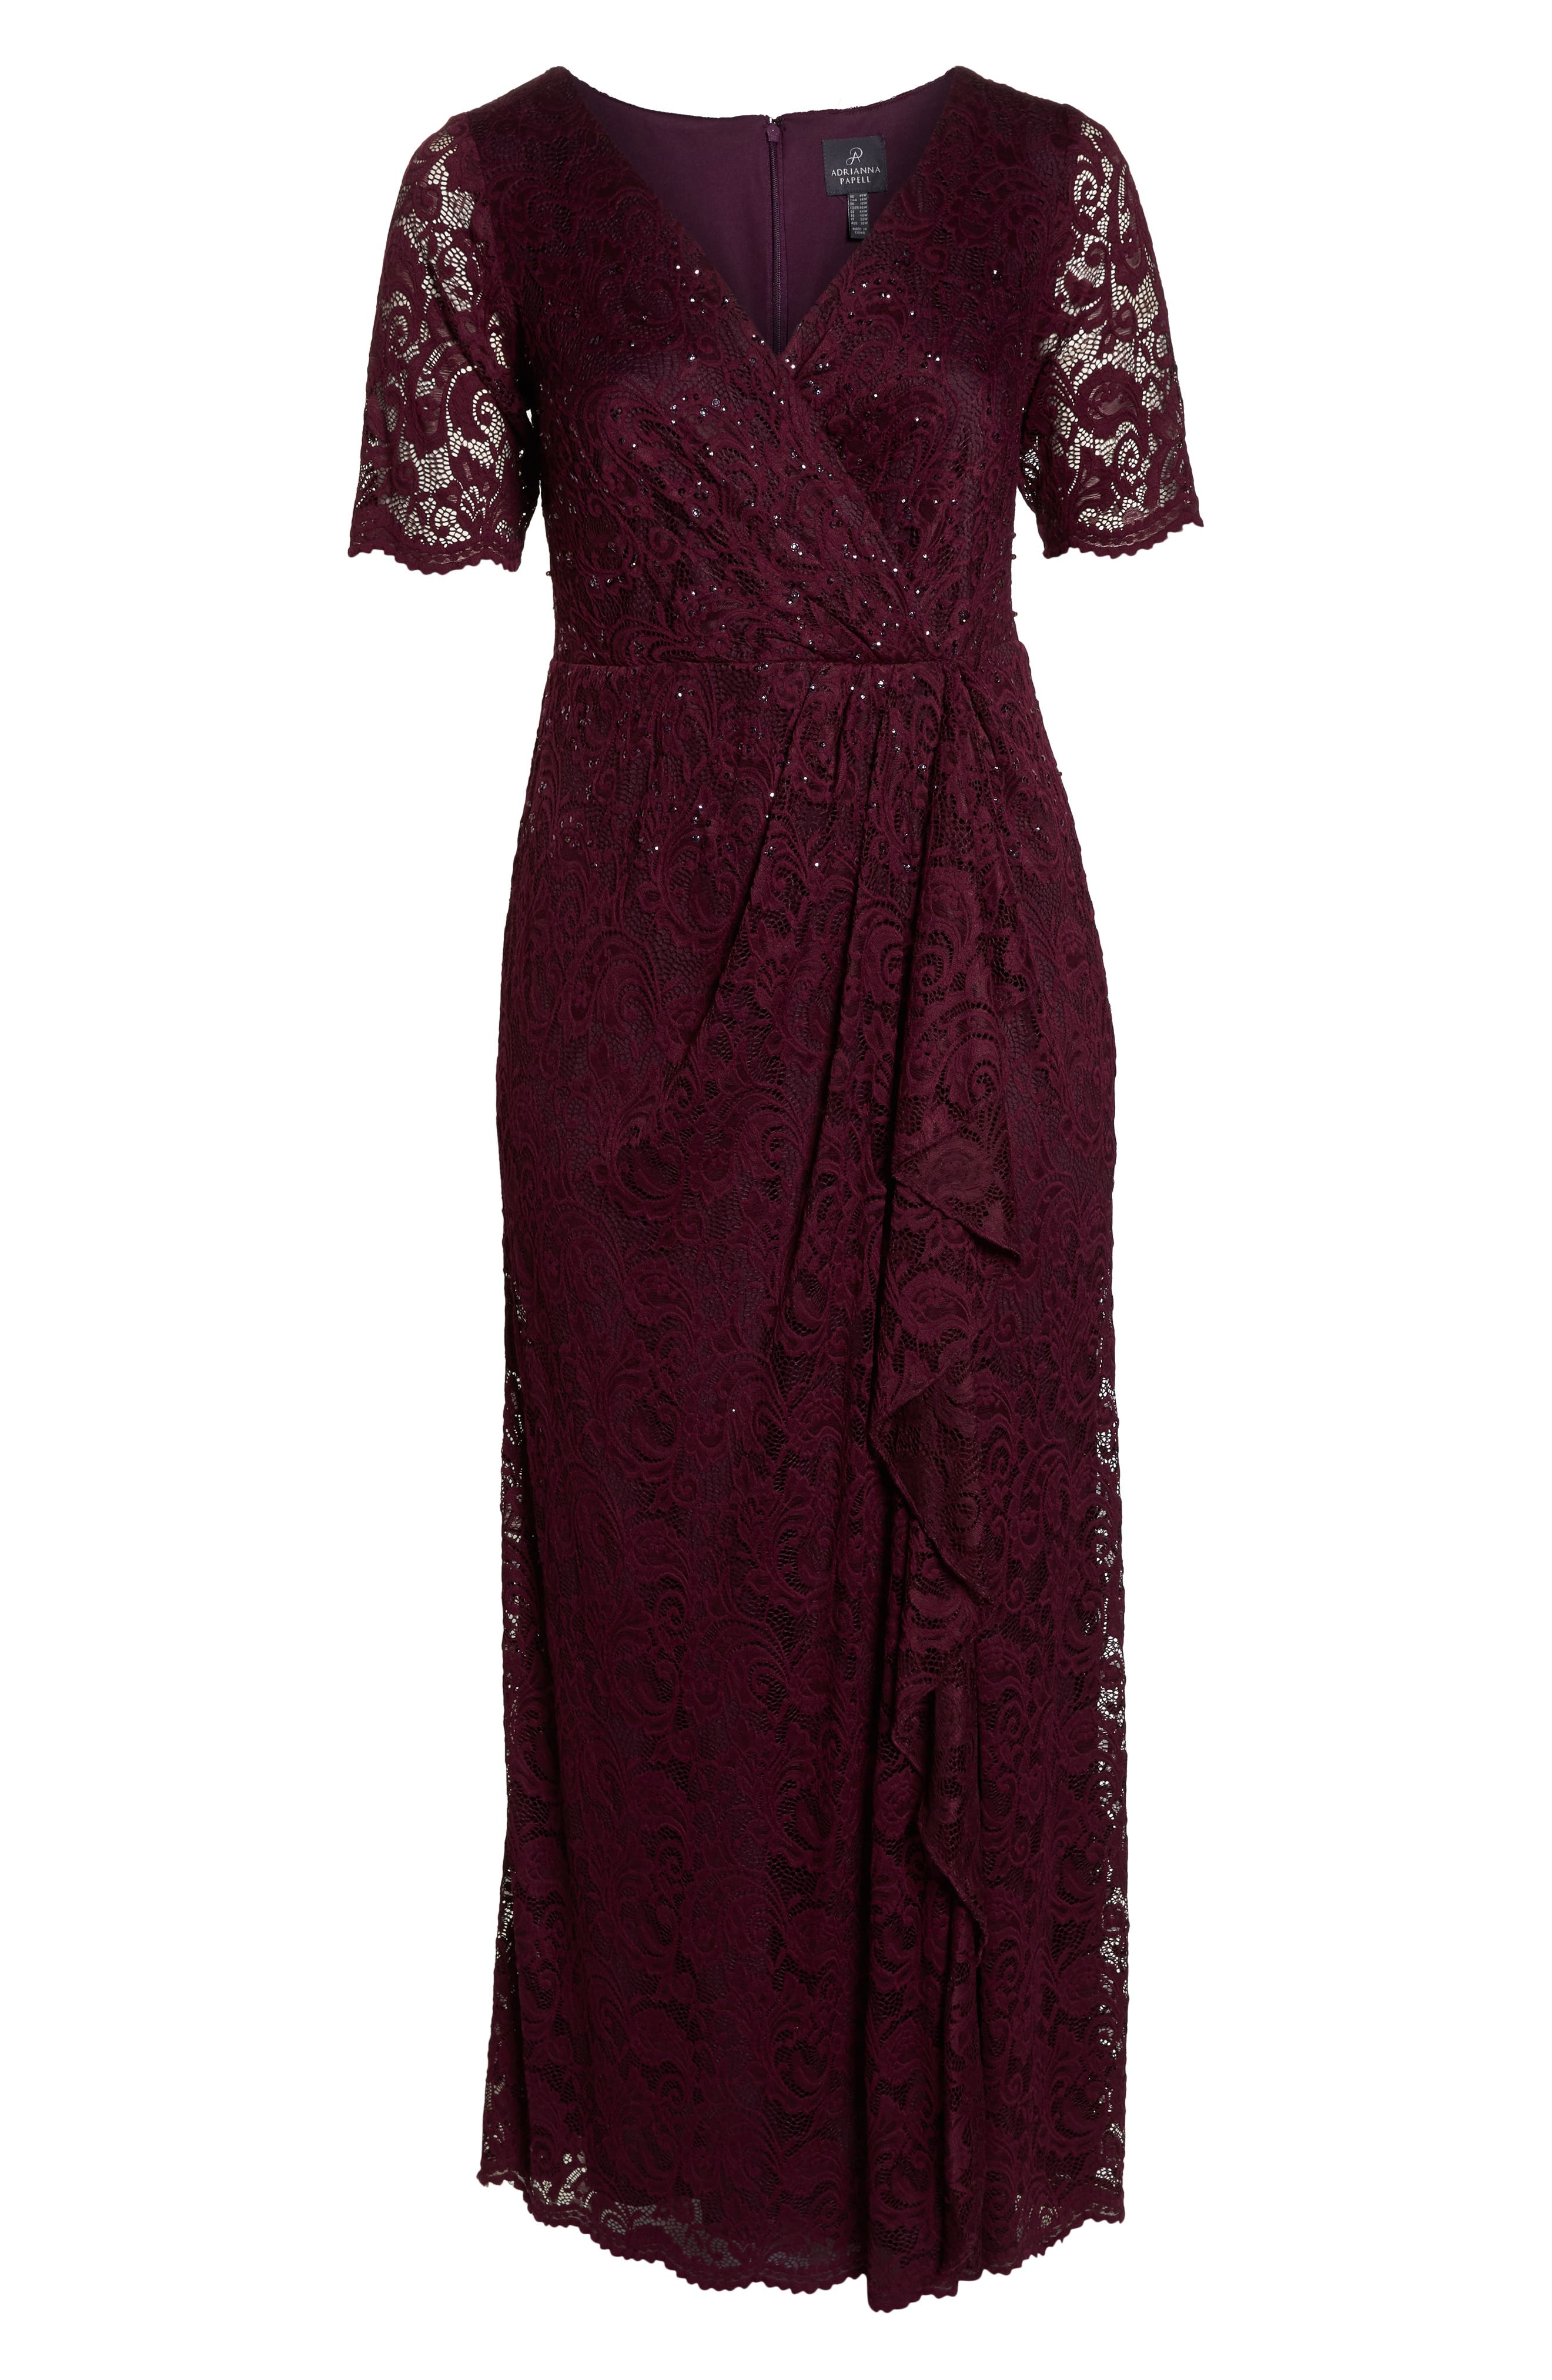 Cascade Ruffle Sequin Lace Gown,                             Alternate thumbnail 7, color,                             600